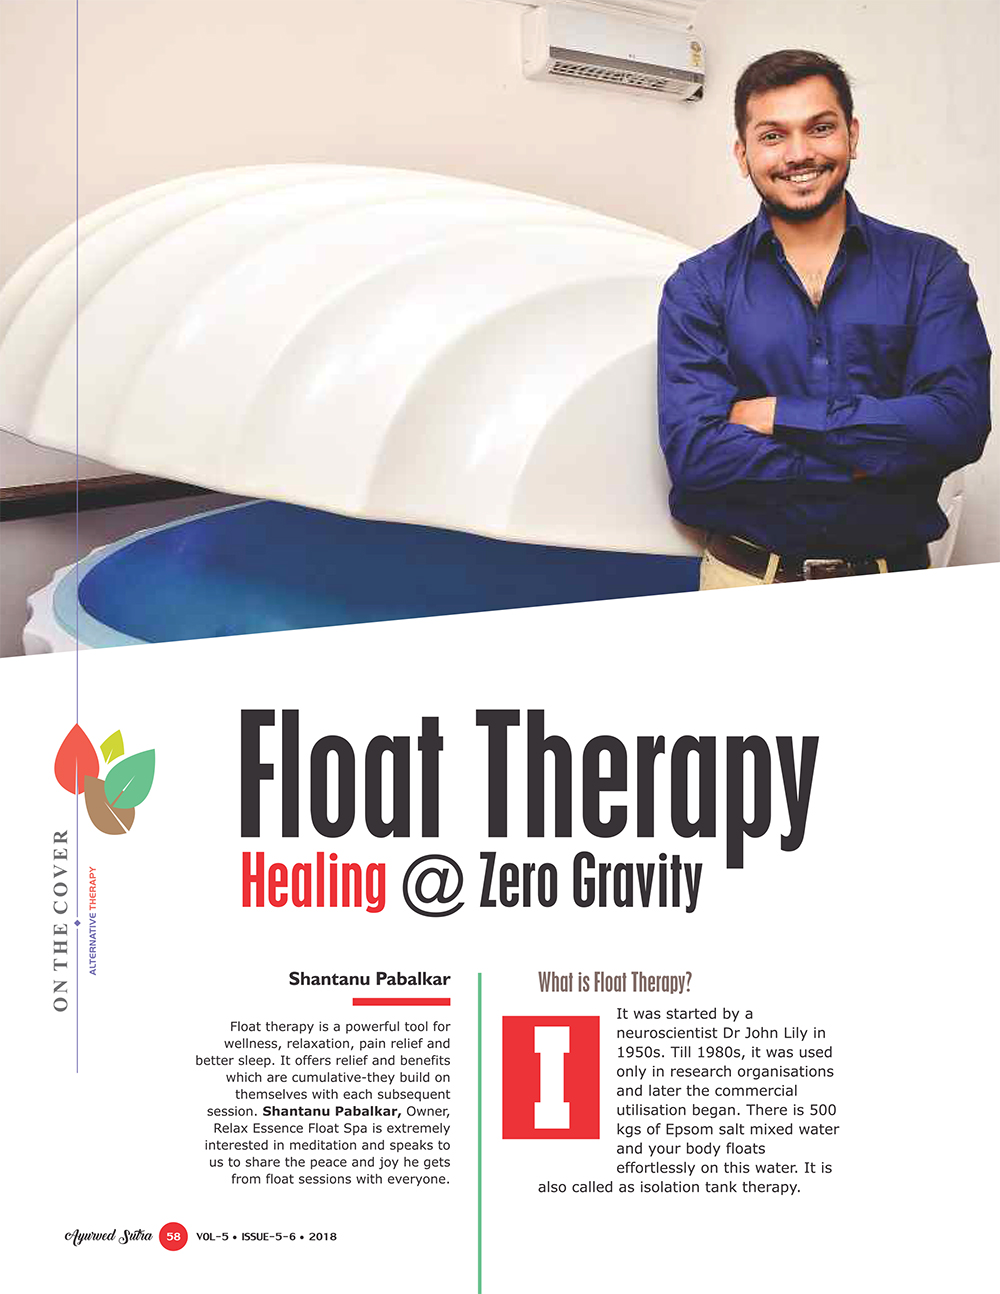 Ayurvedsutra Vol 05 issue 05 06 60 - Float Therapy: Healing @Zero Gravity